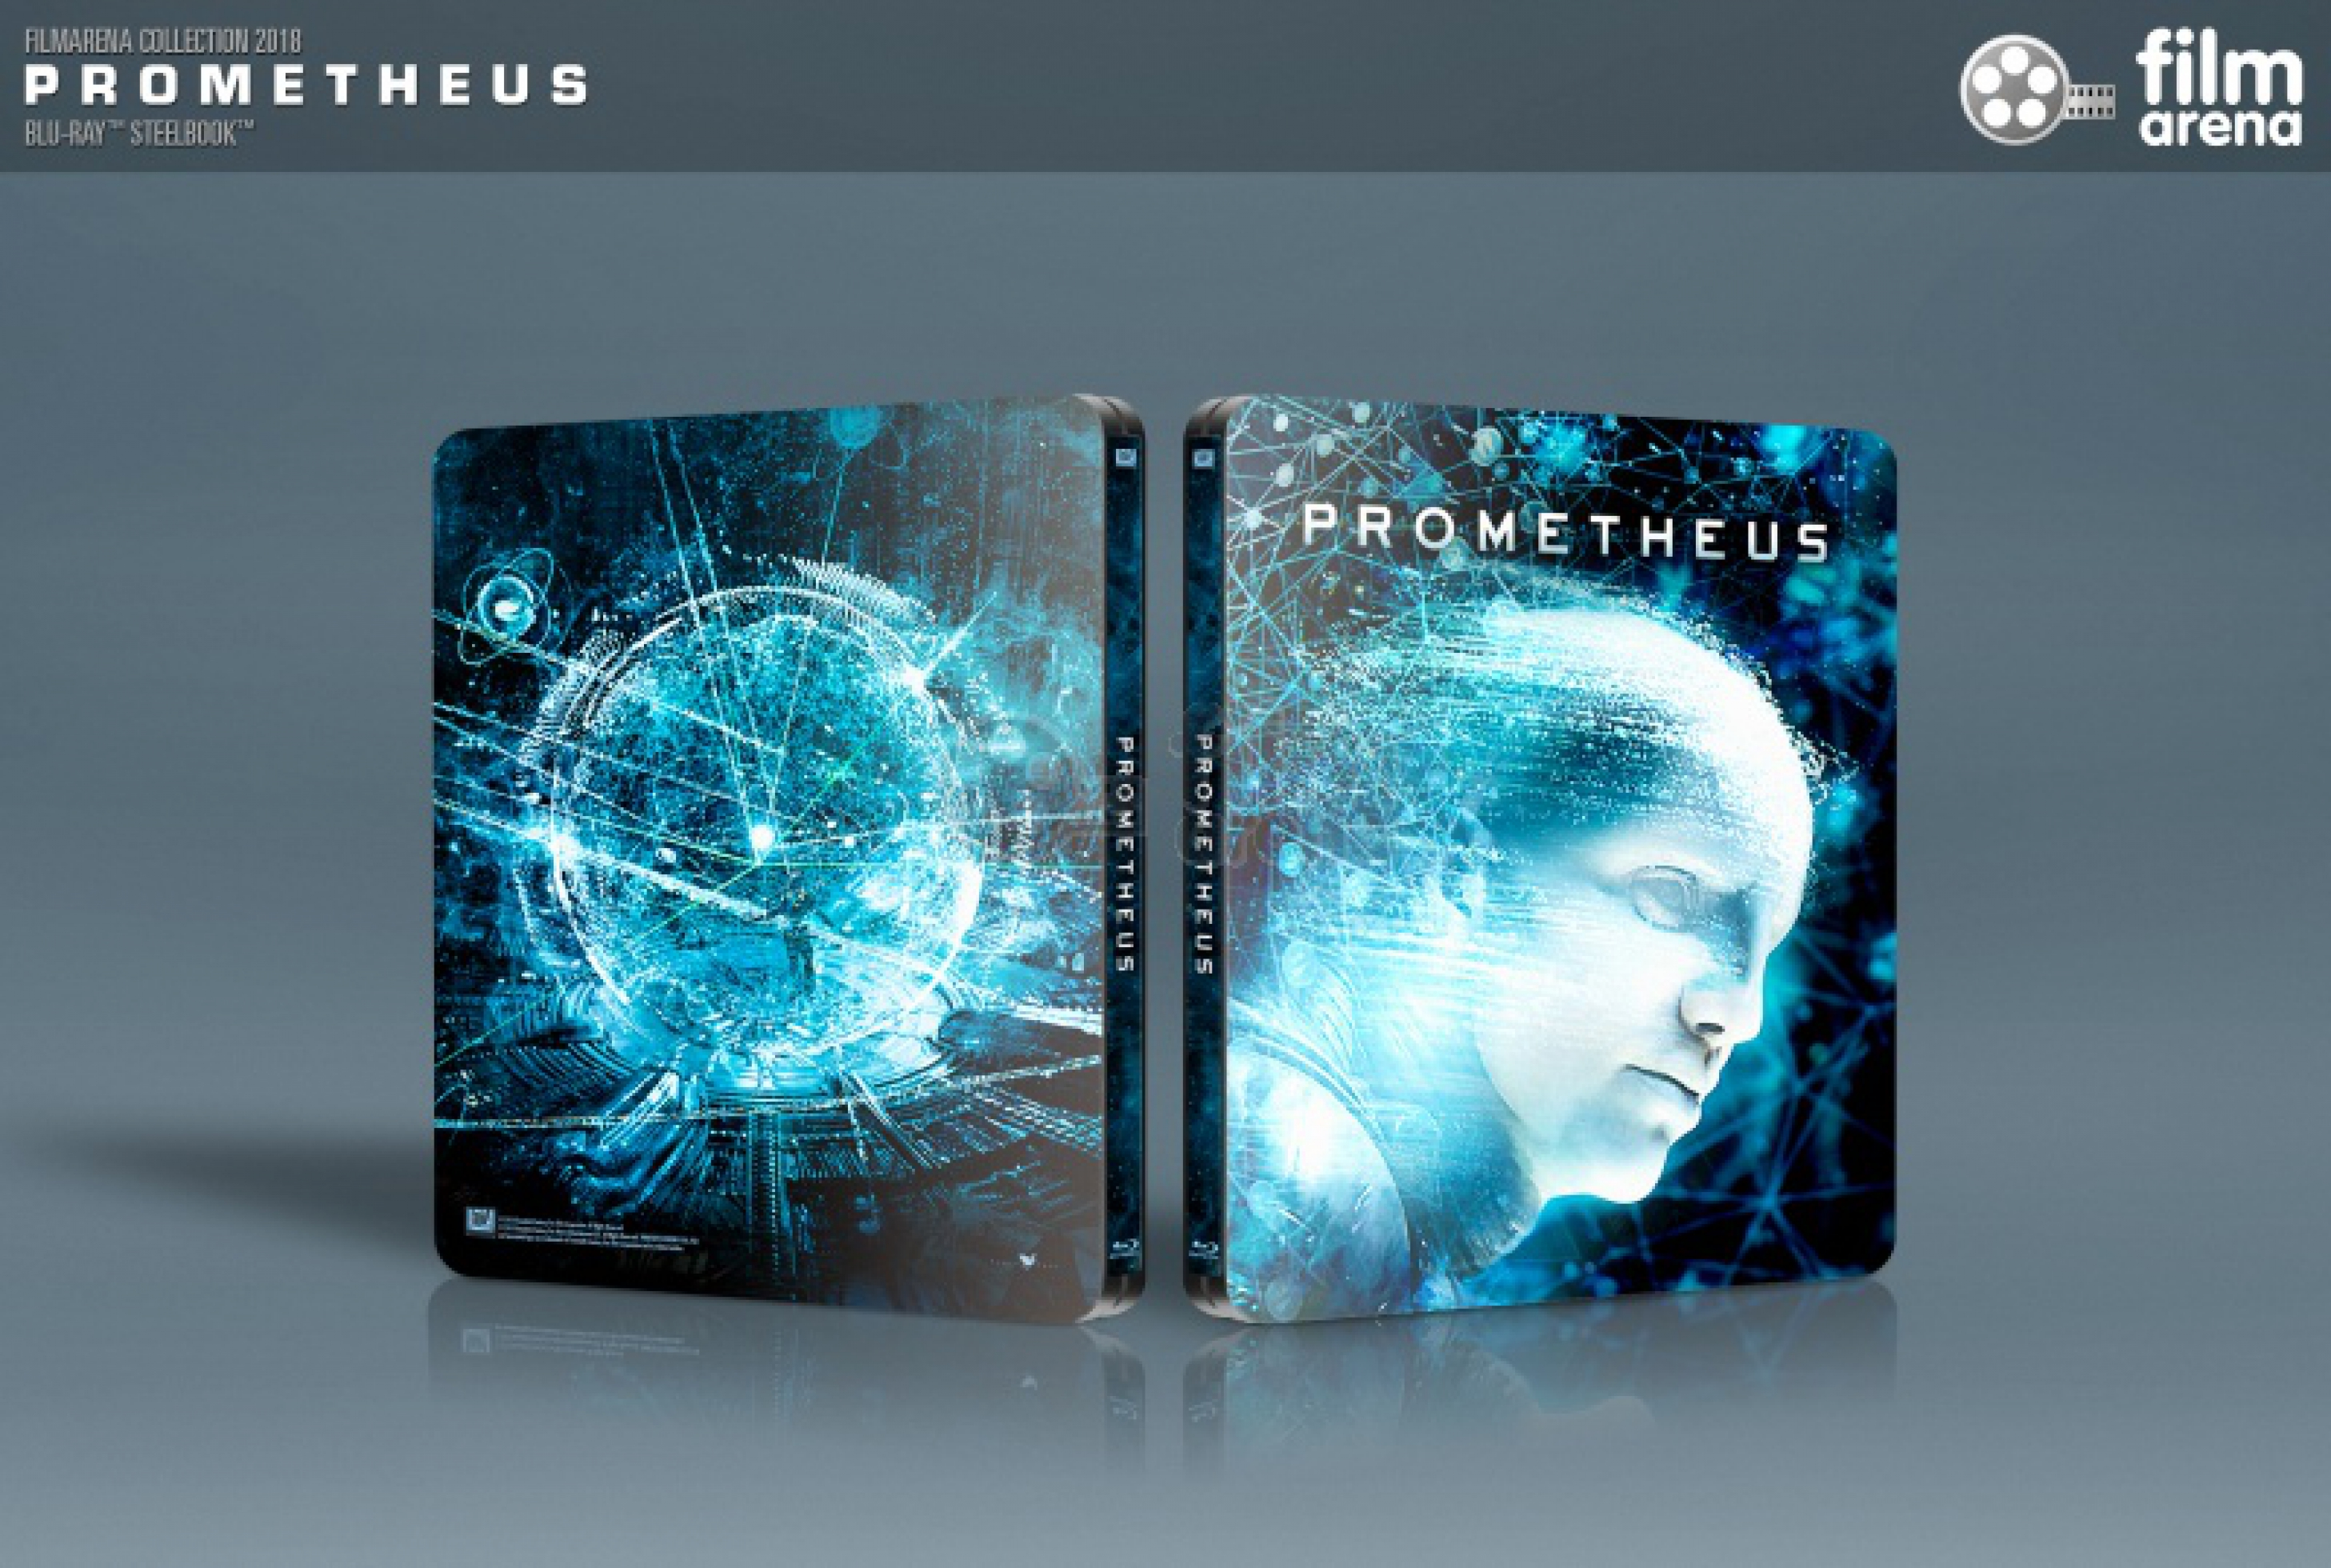 HD-Filmportal Prometheus 3D Edition 5 FAC unnumbered